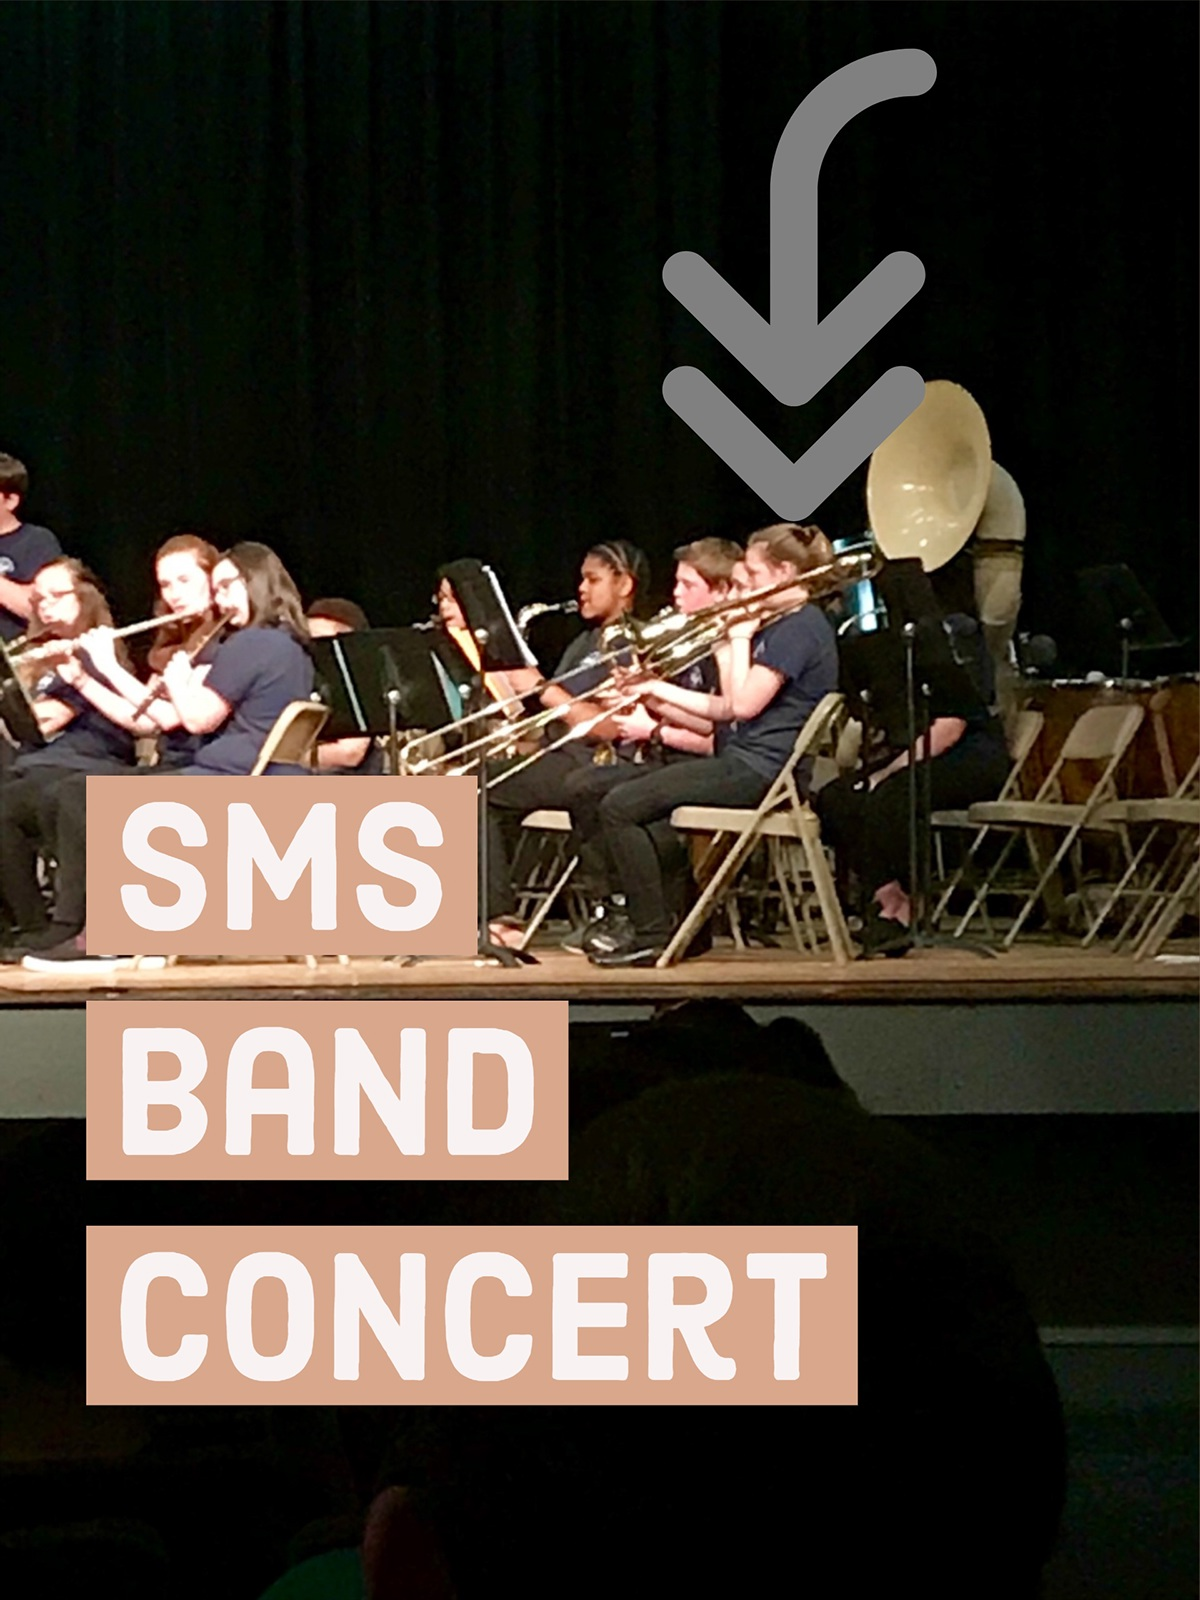 SMS Band Concert SMS Band Concert